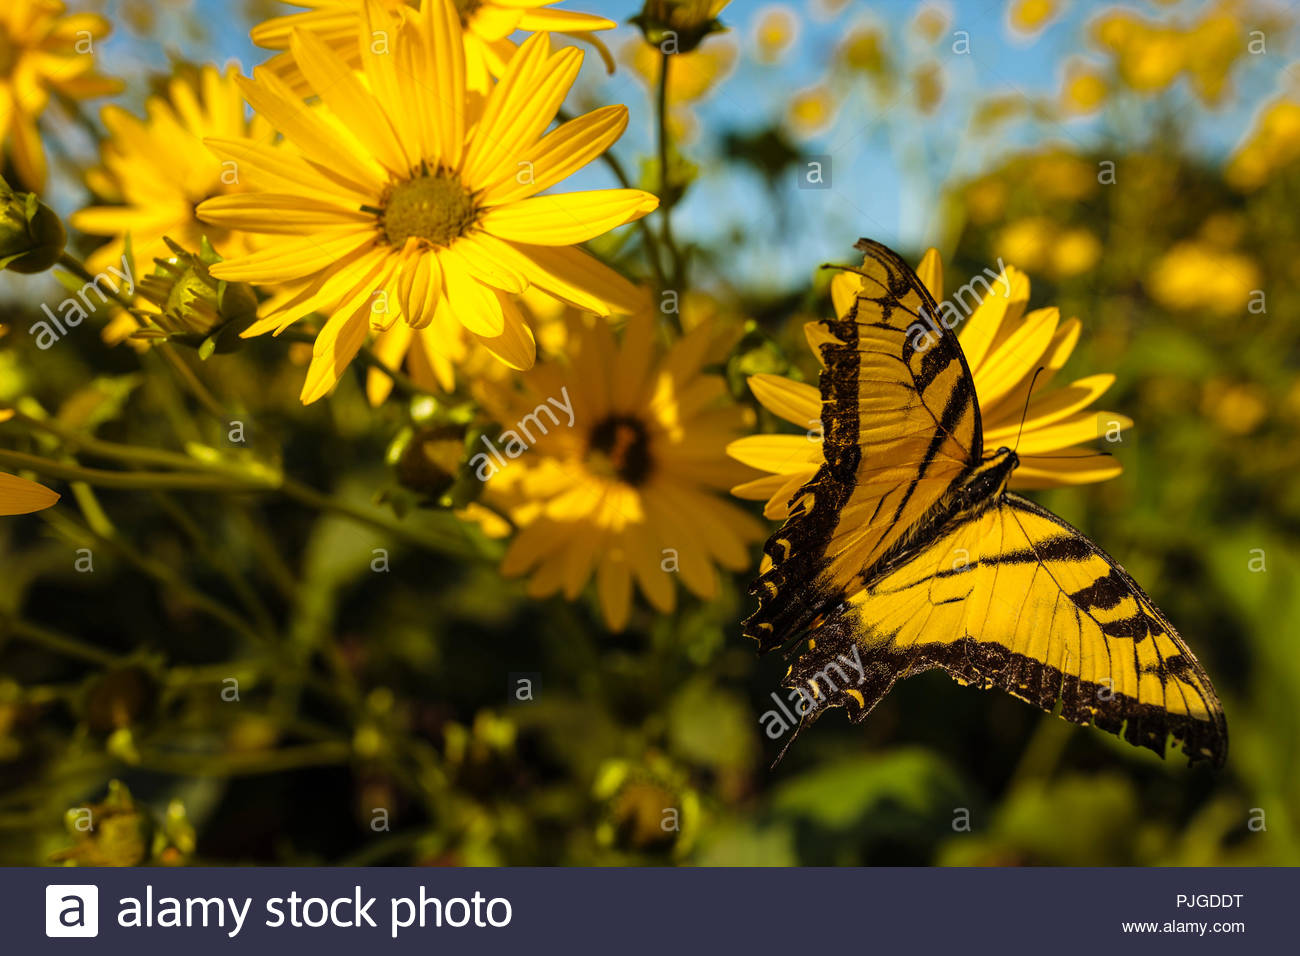 Butterfly Landing On Plant Stock Photos & Butterfly Landing On Plant ...